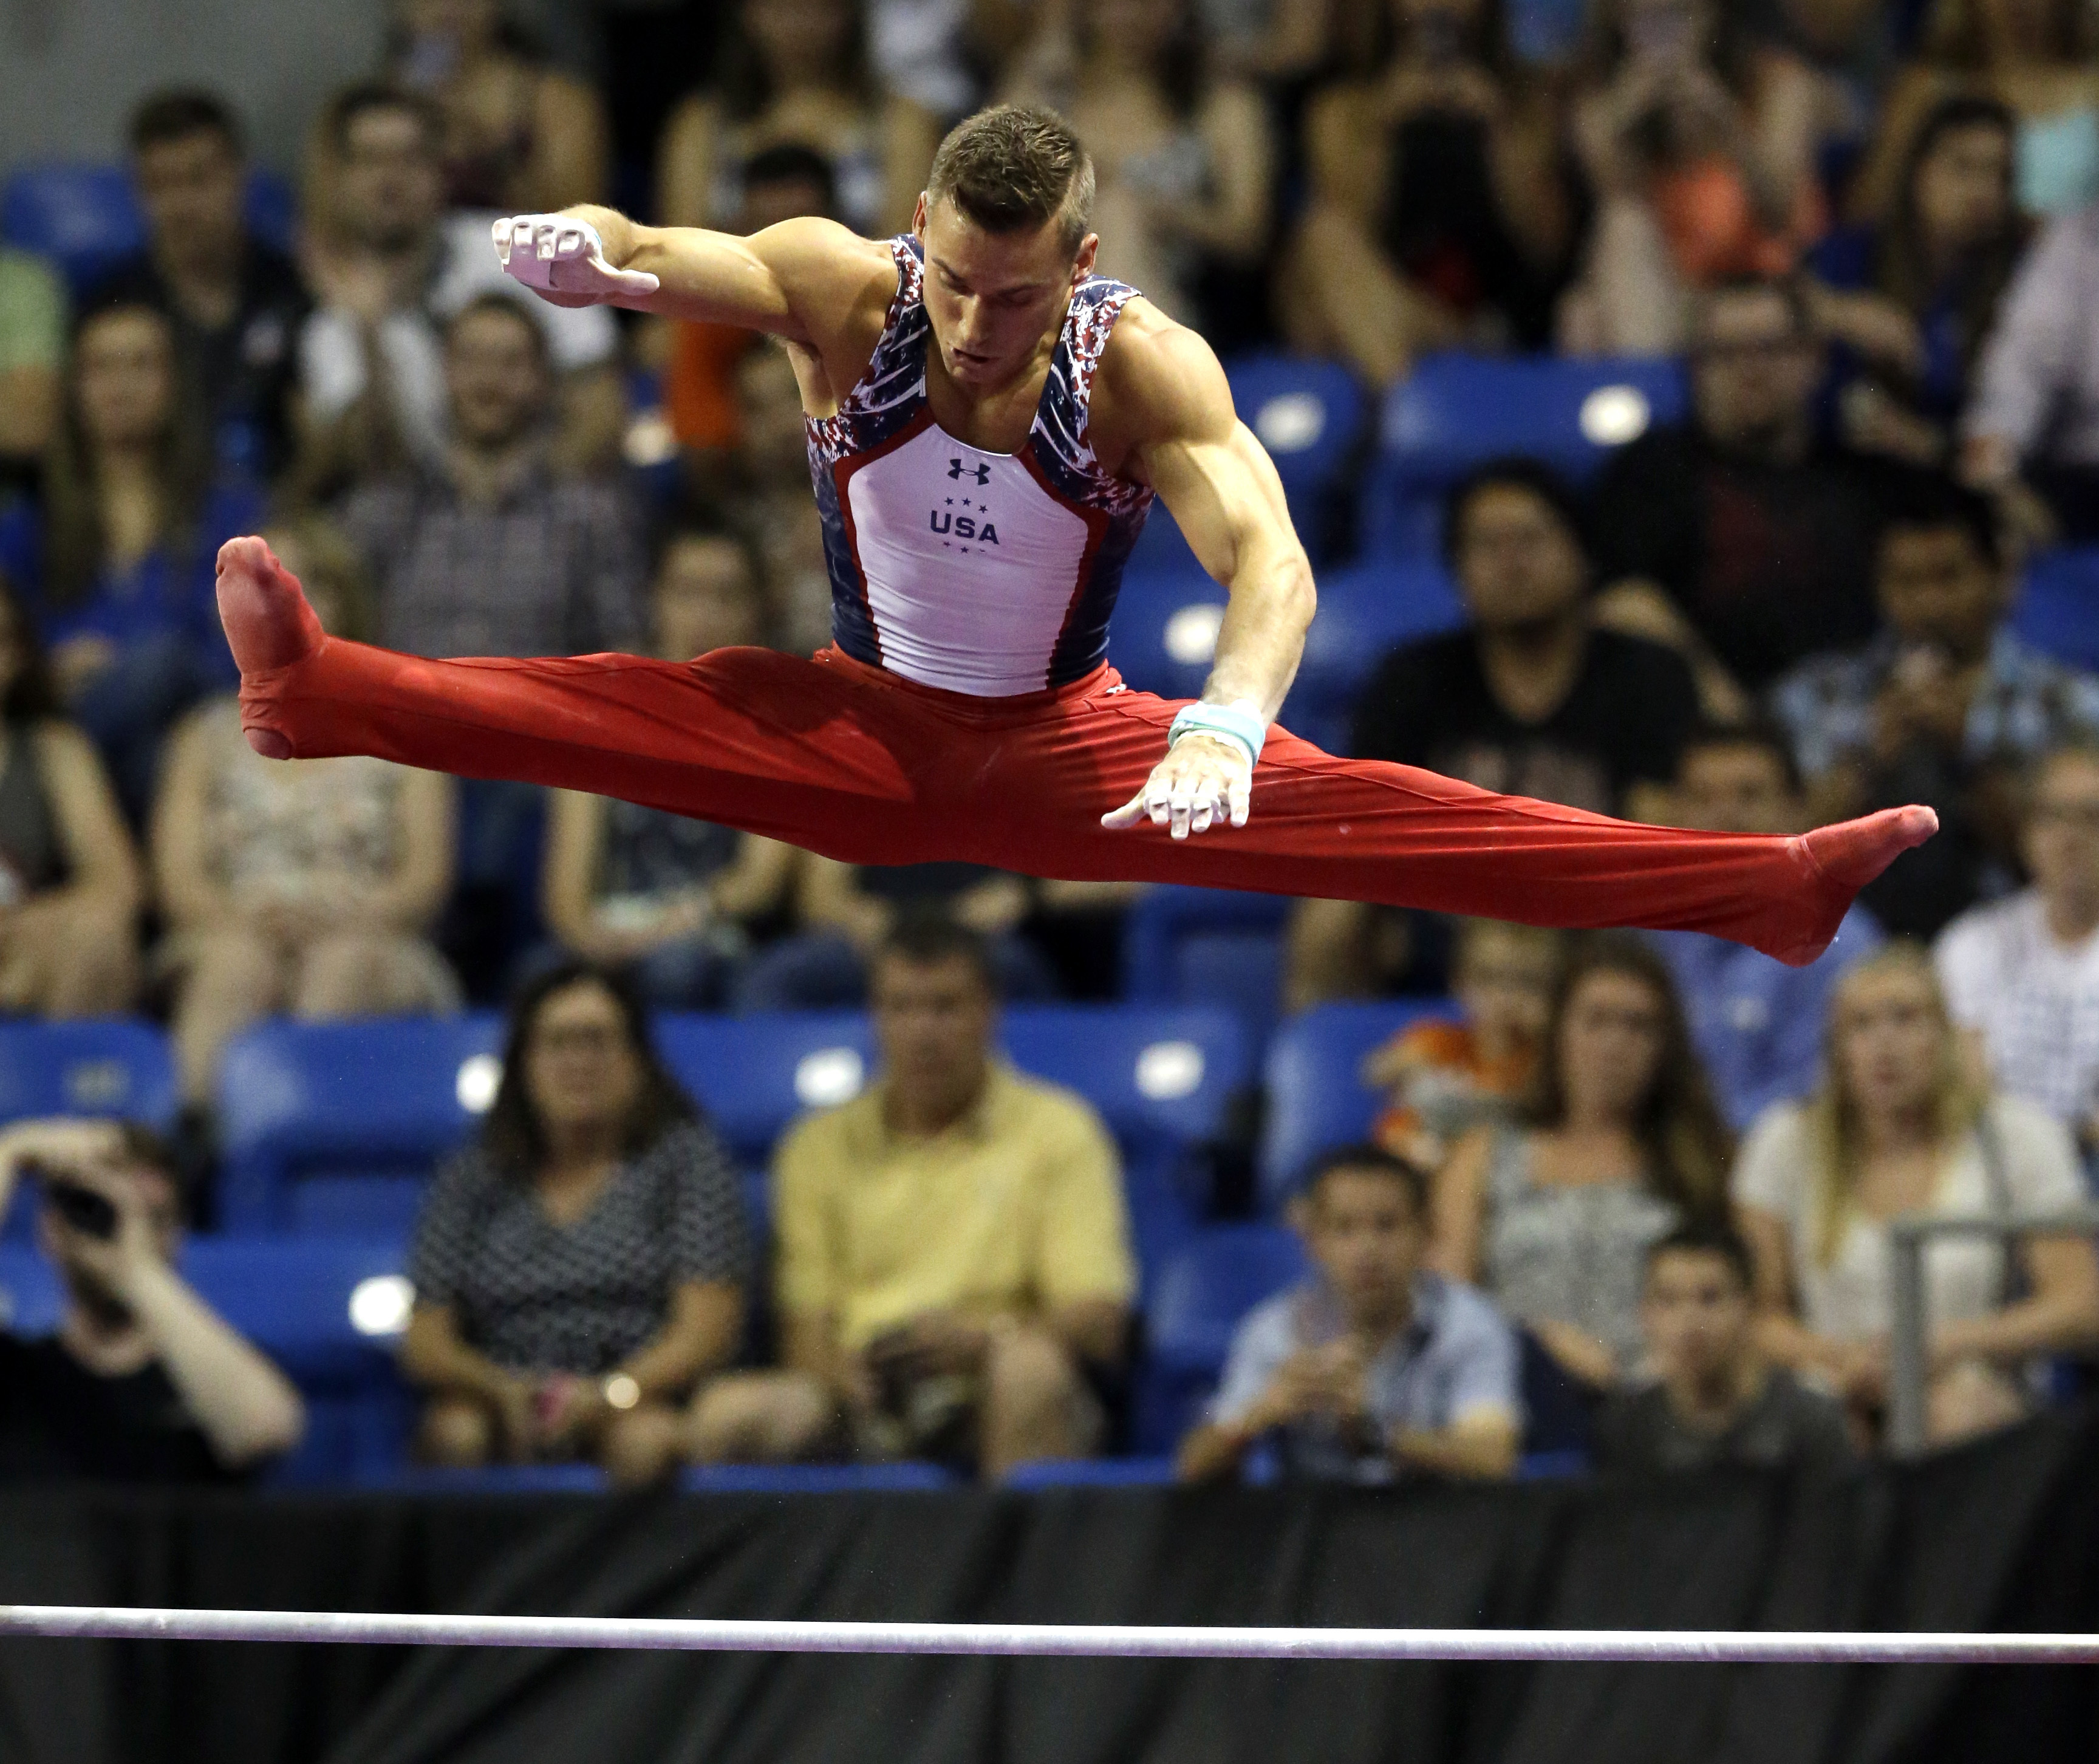 Sam Mikulak competes on the high bar during the U.S. men's Olympic gymnastics trials Saturday, June 25, 2016, in St. Louis. (AP Photo/Jeff Roberson)